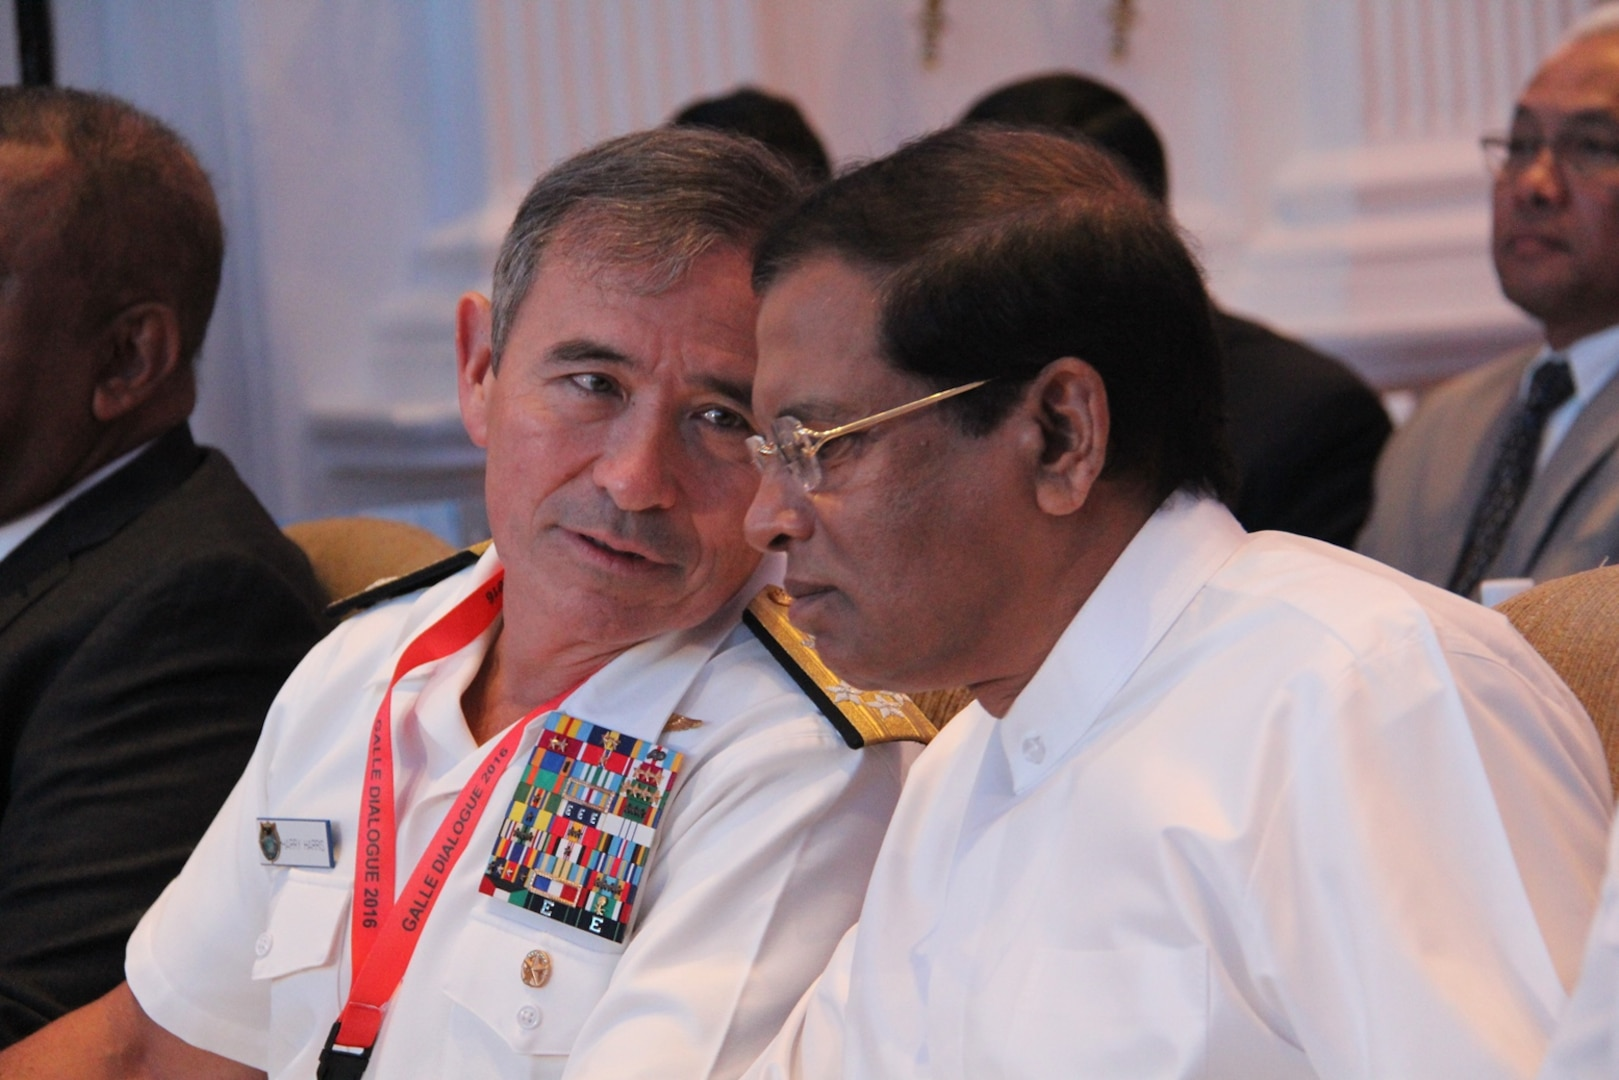 Commander of U.S. Pacific Command, Admiral Harry Harris met with President Maithripala Sirisena and affirmed U.S. Commitment to enhance bilateral cooperation with Sri Lanka.  He visited Sri Lanka, November 27-29, to attend the Galle Dialogue 2016 maritime security conference.